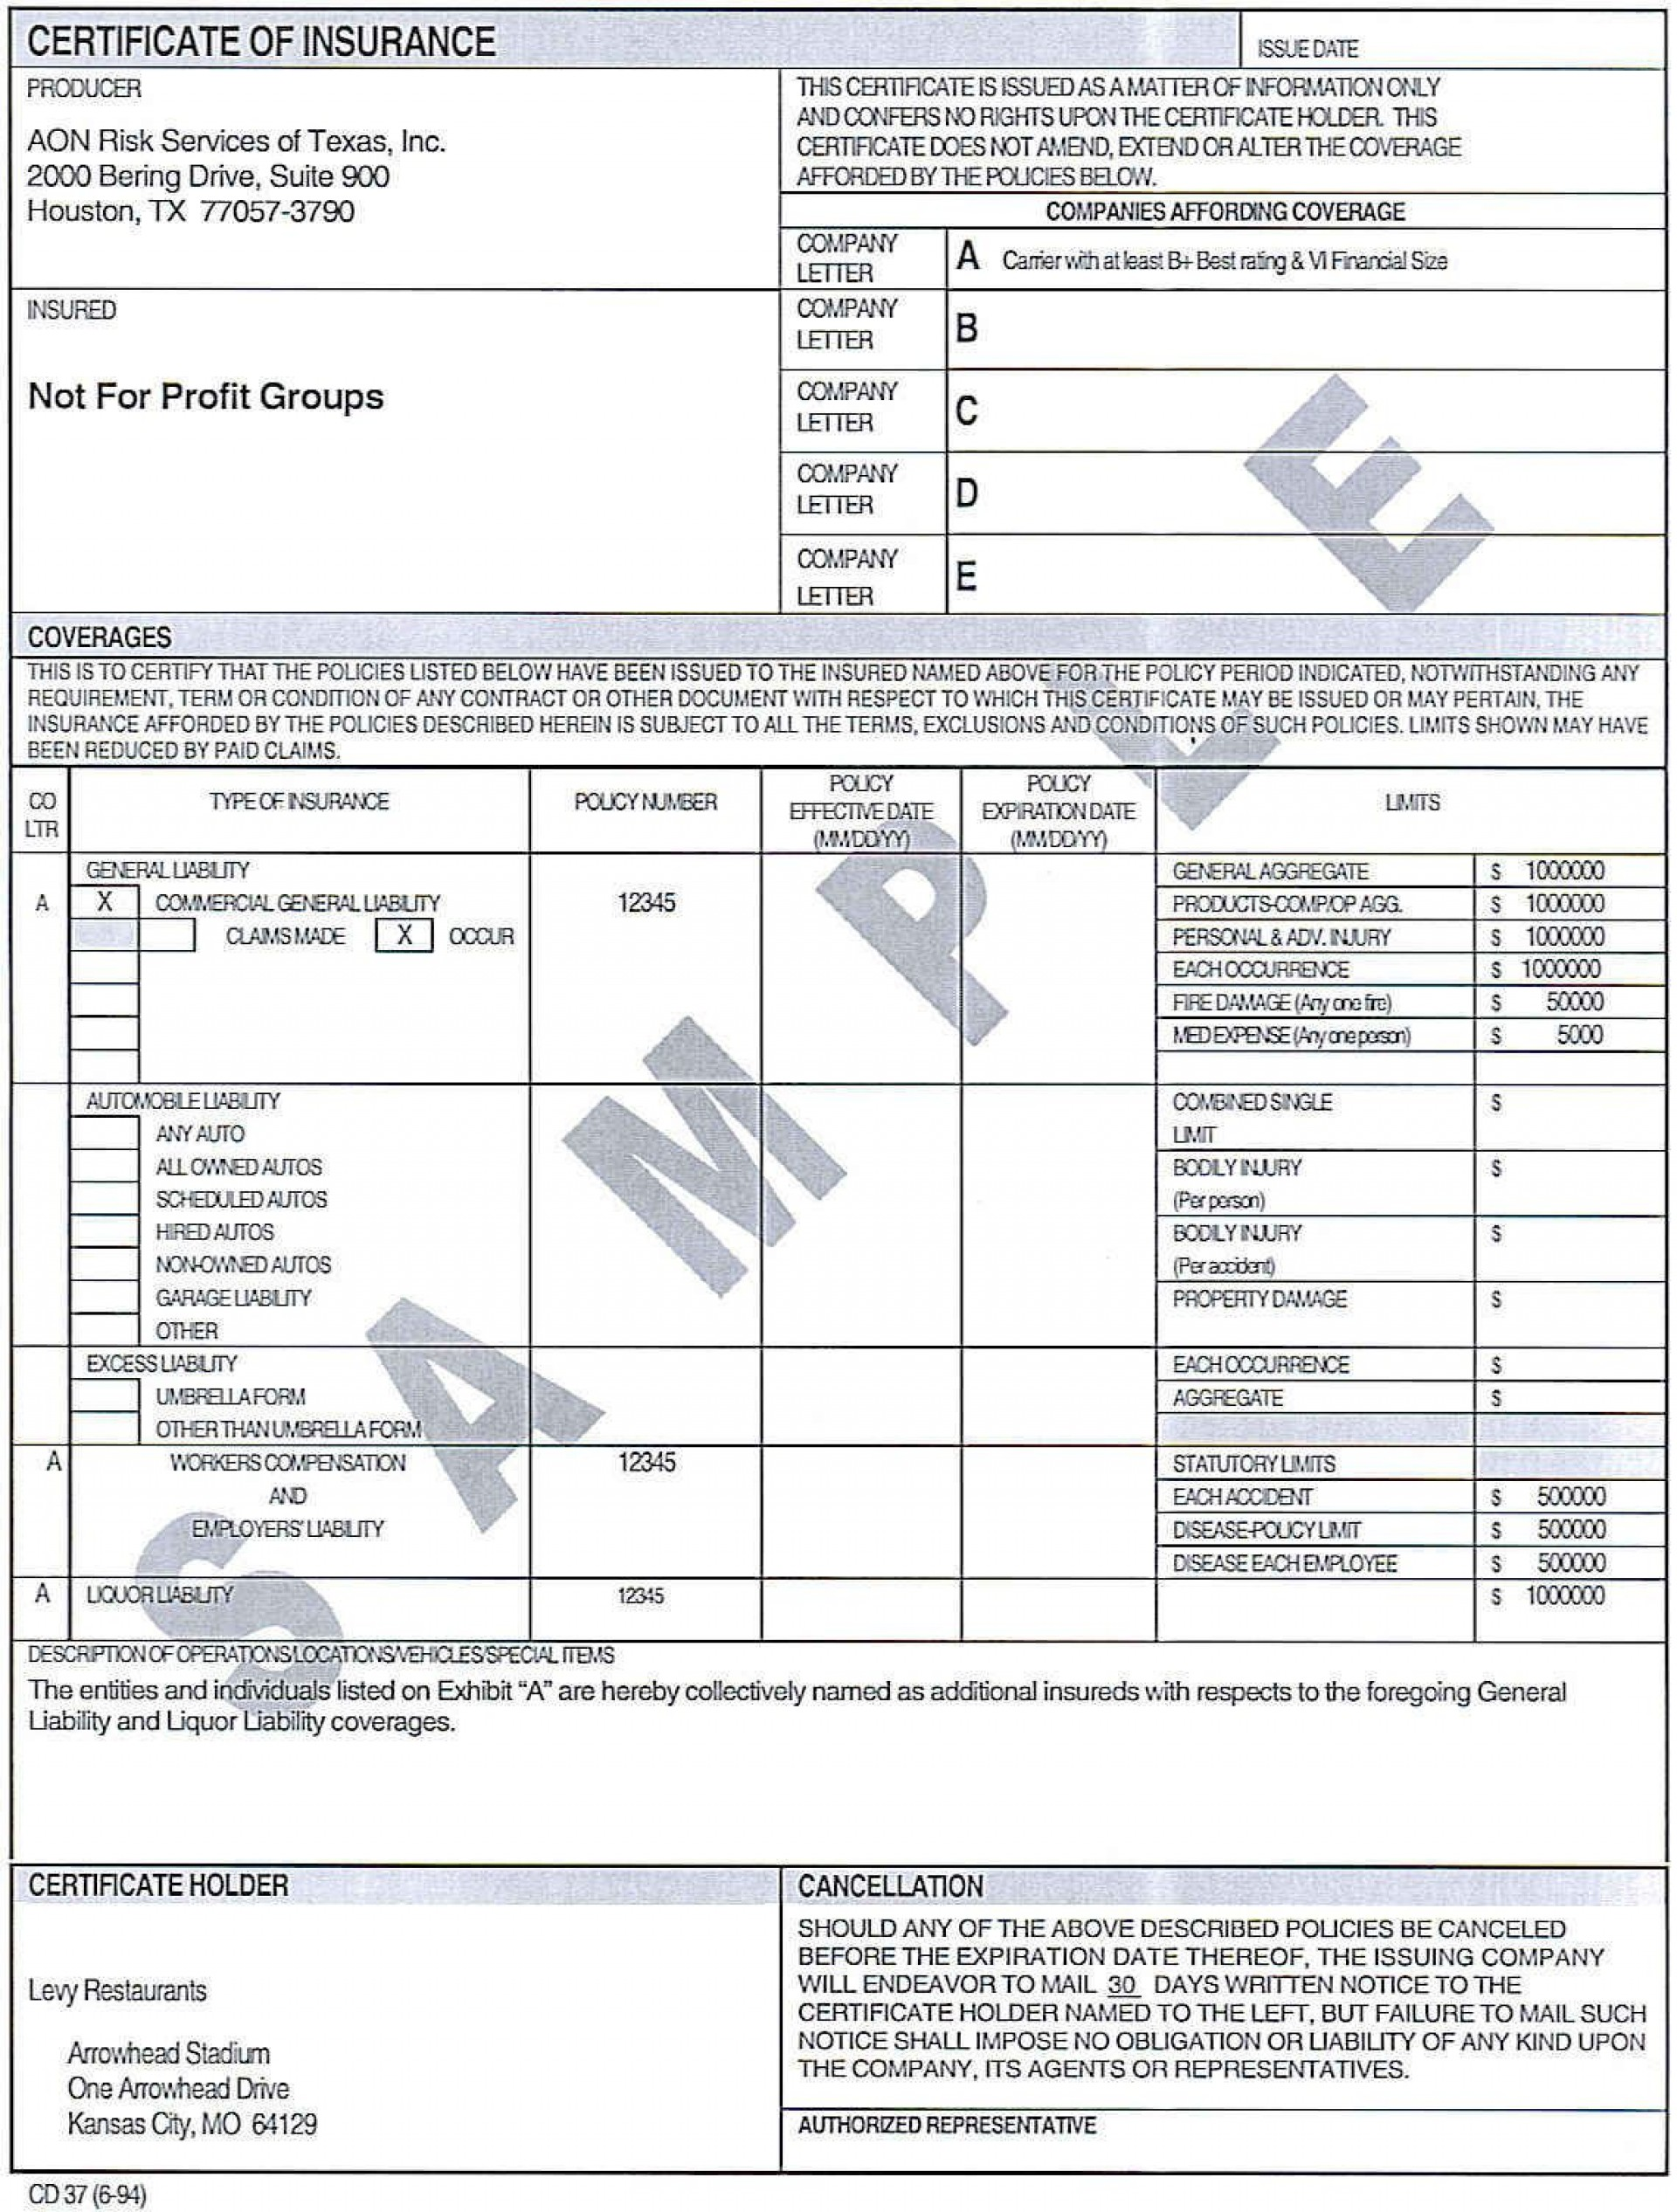 007 Incredible Certificate Of Insurance Template Image  Sample Pdf Csio Tracking Acces1920